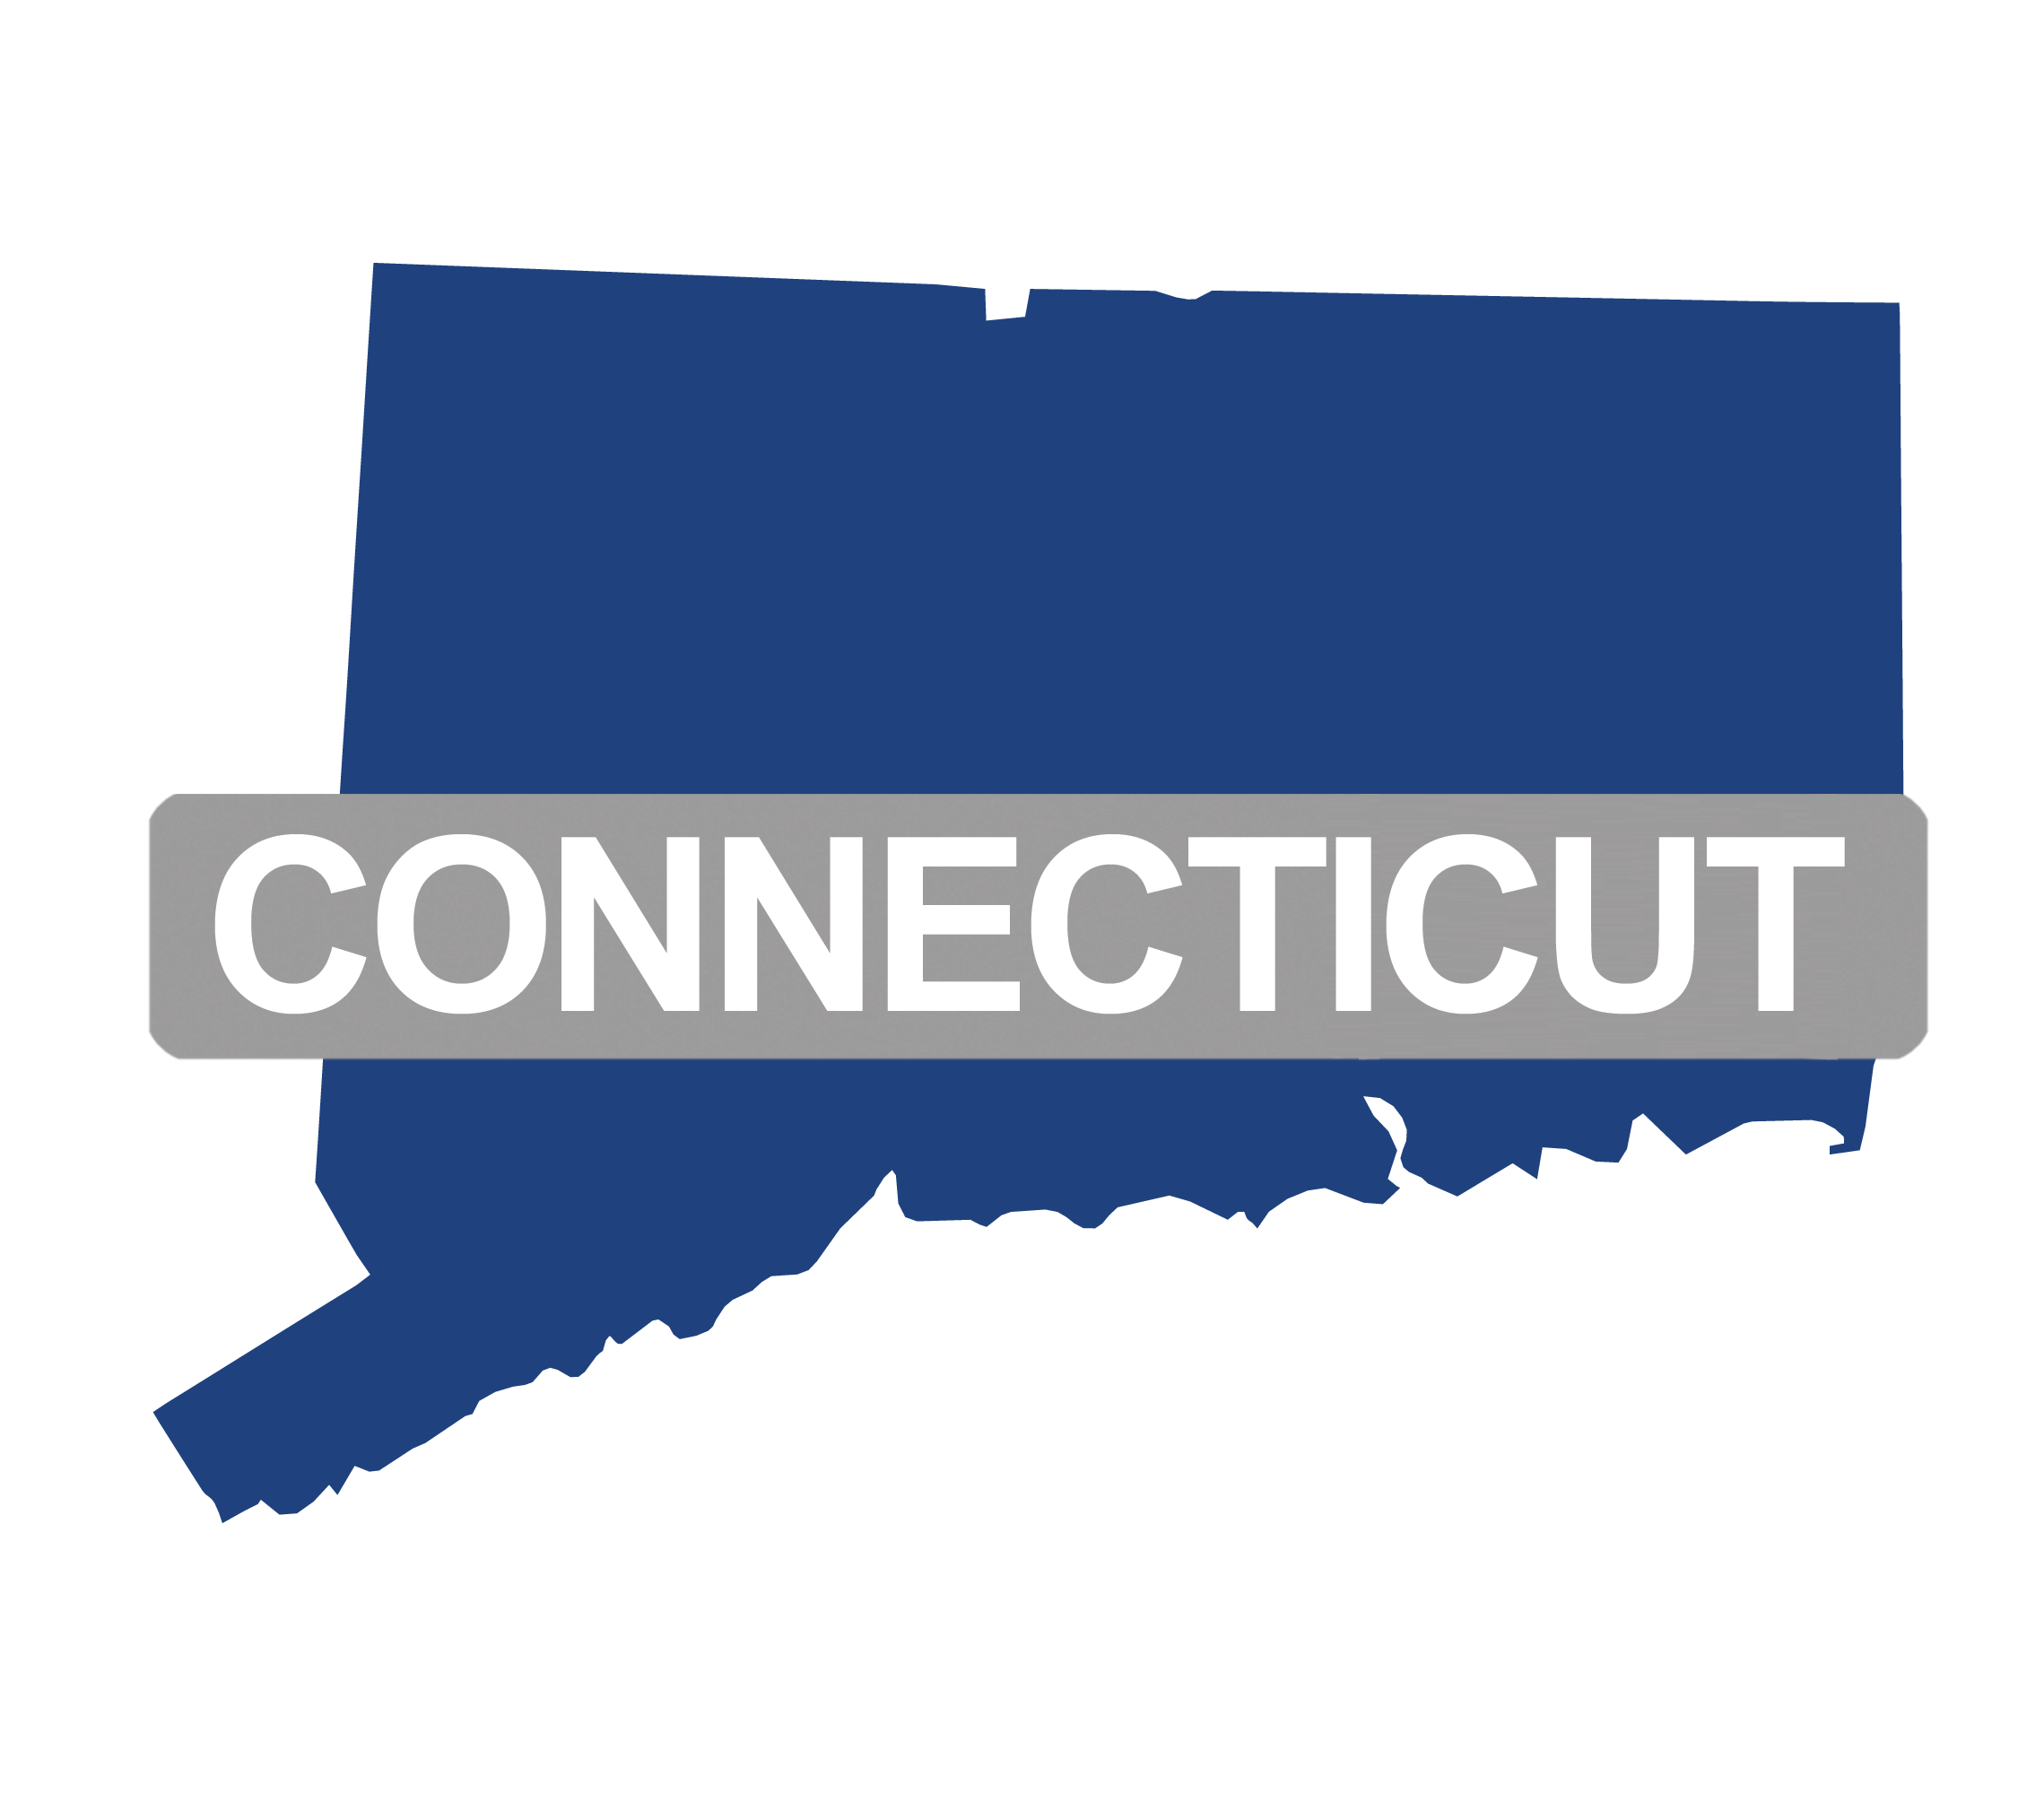 Connecticut State Graphic